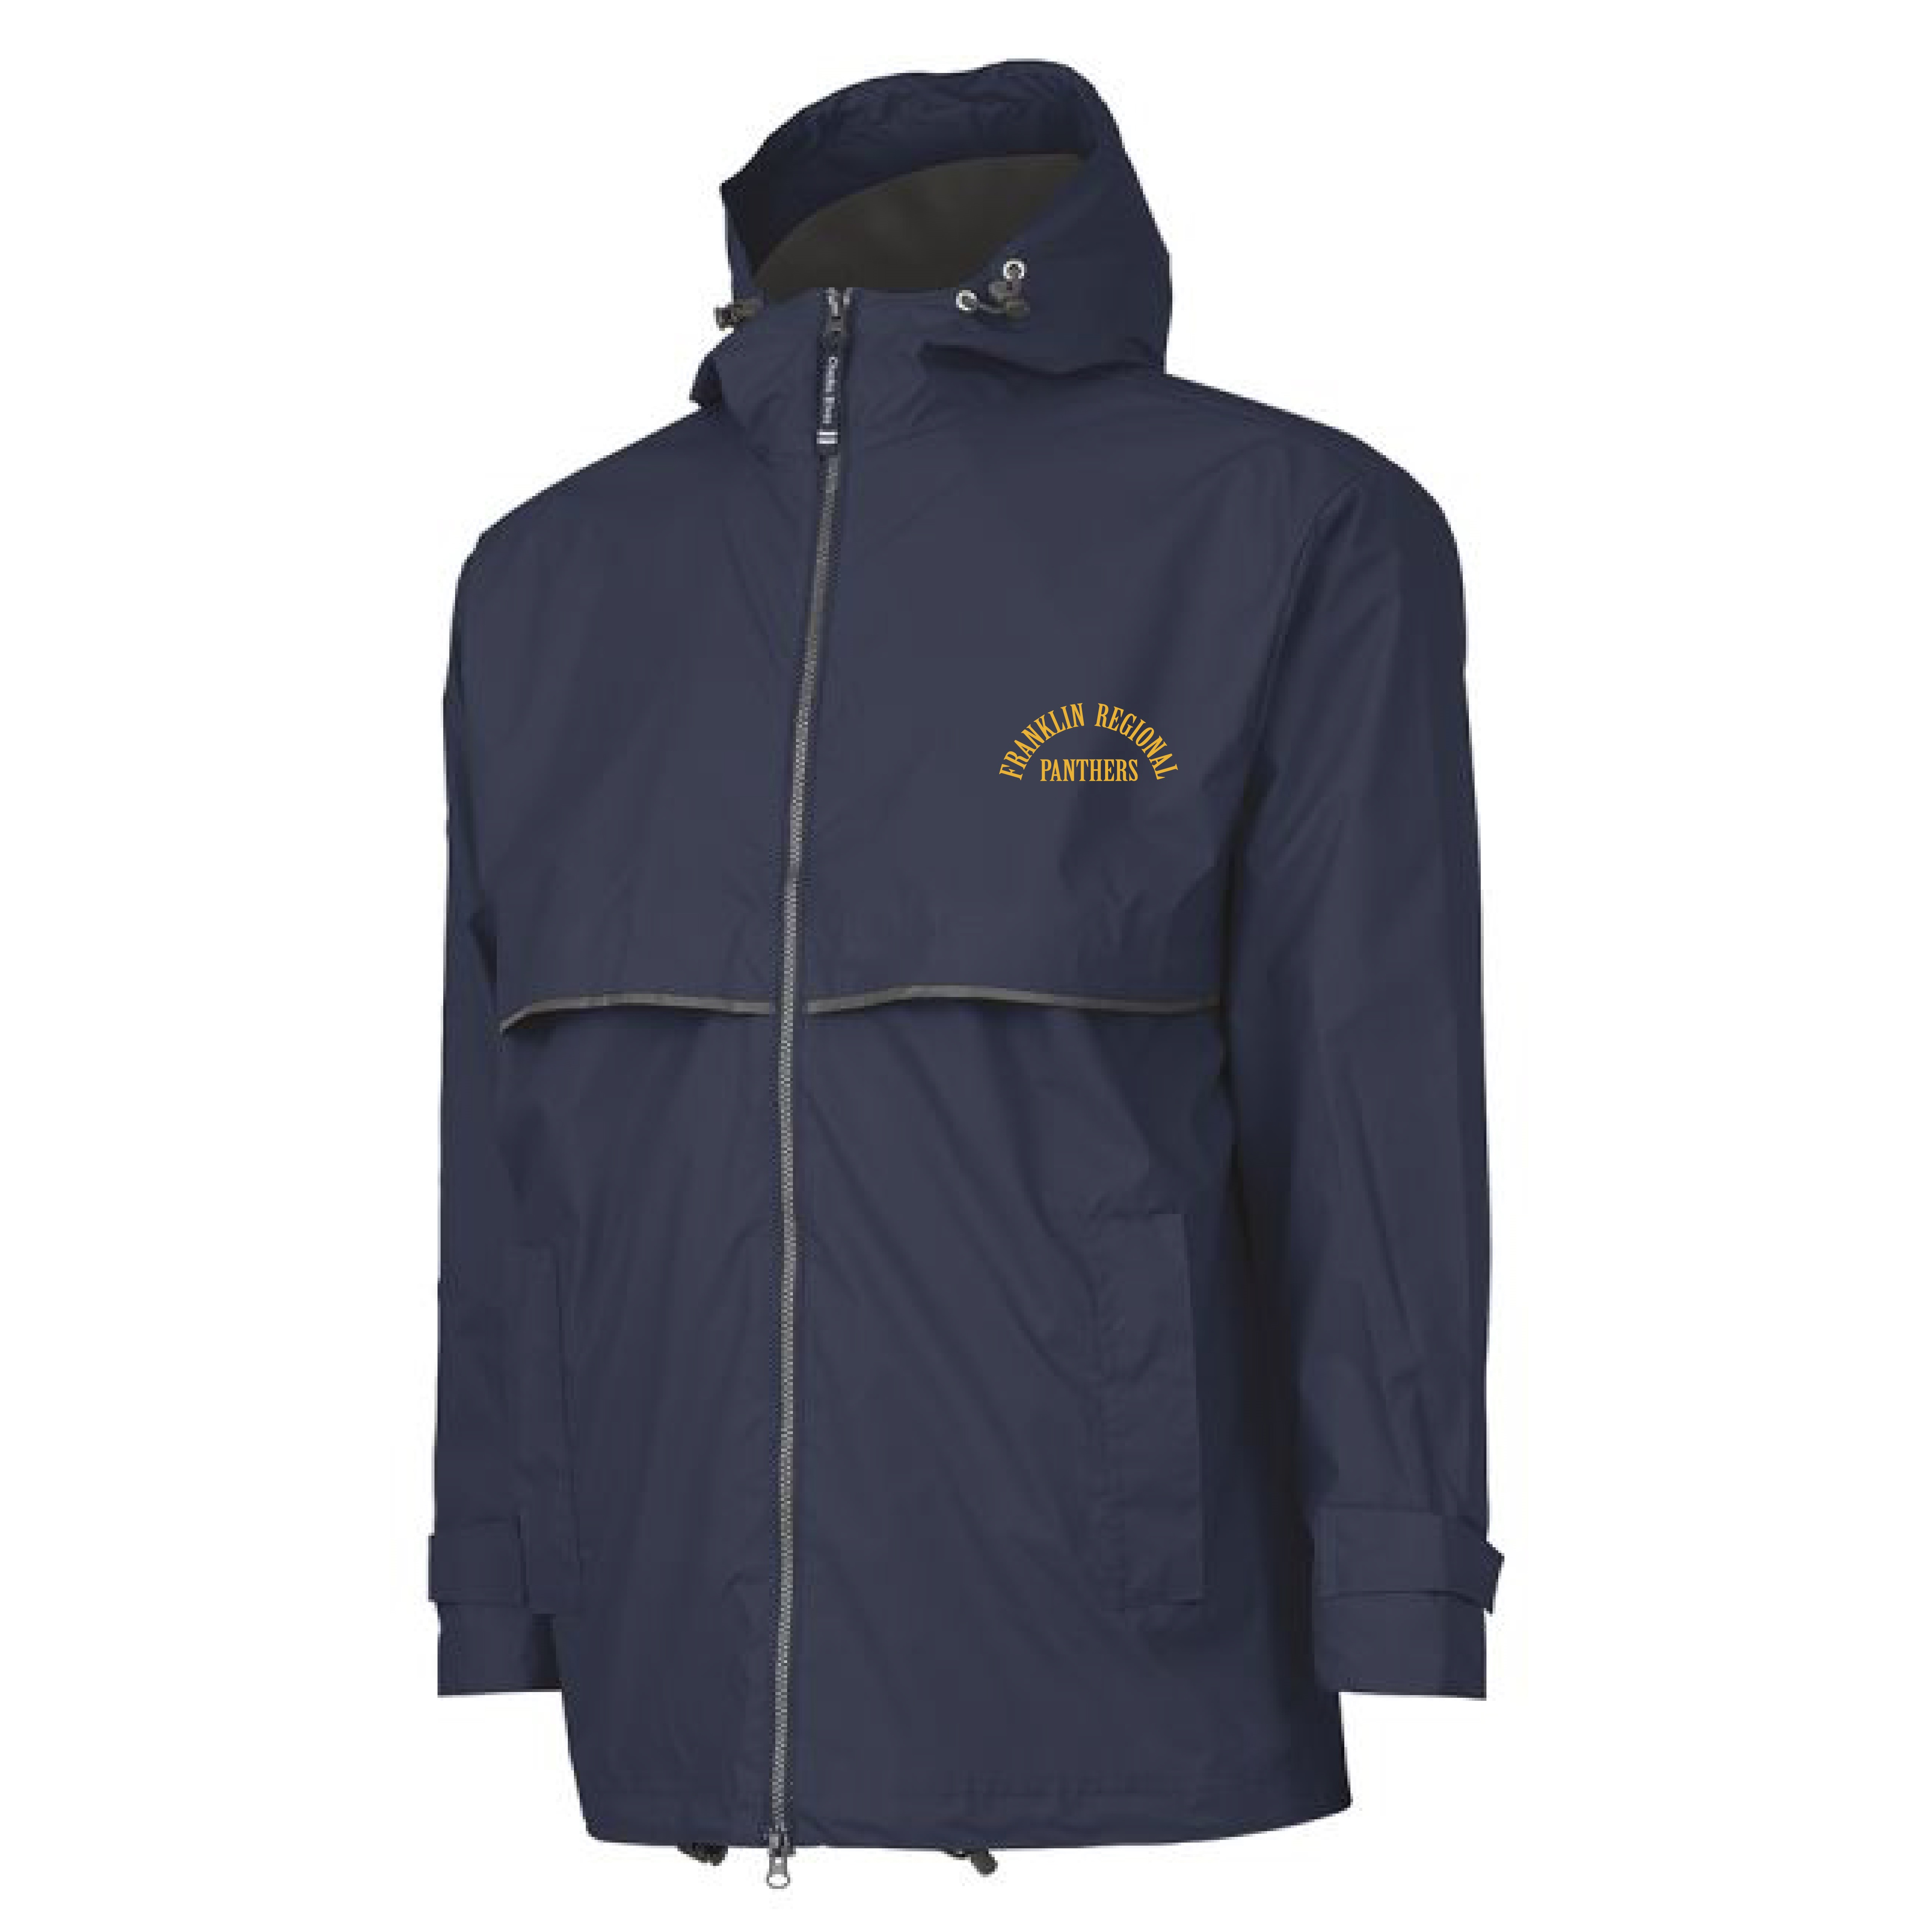 Charles River EMBROIDERED Rain Jacket